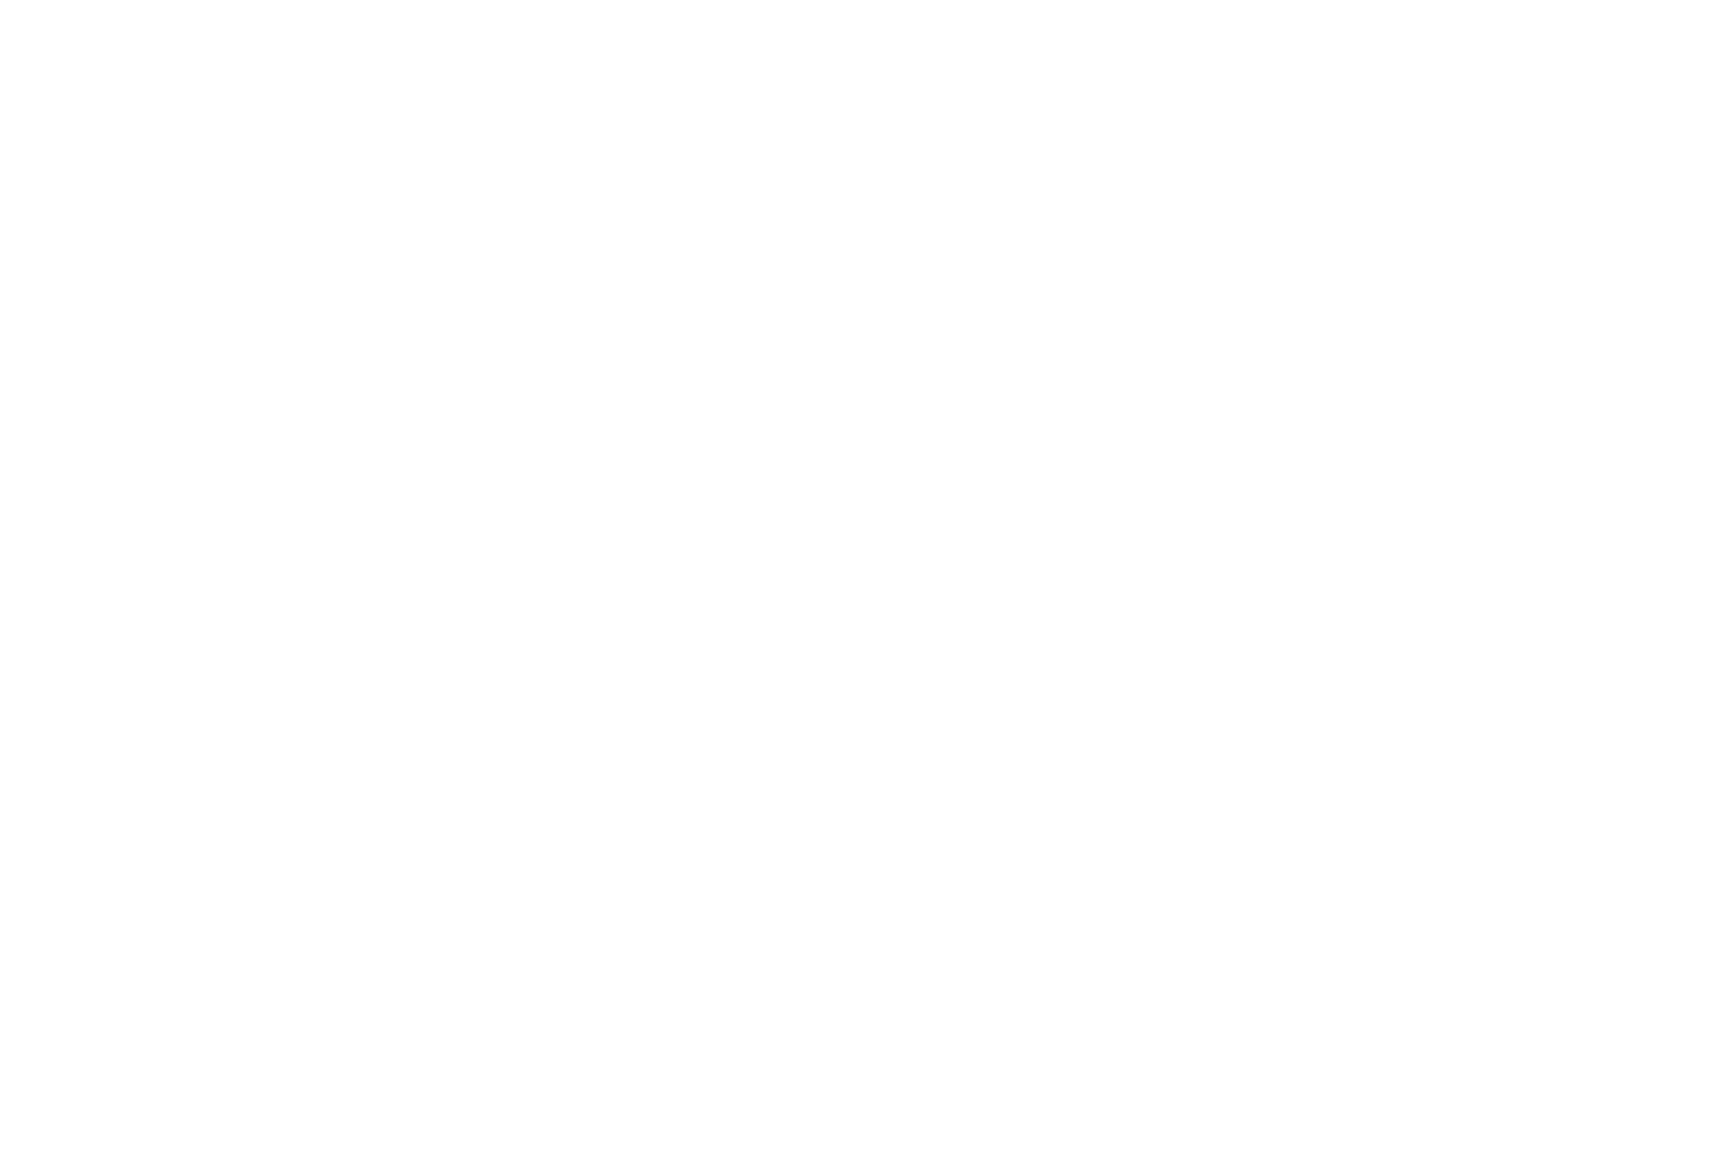 Semi-Finalist - Boston International Film Festival - Screenplay - 2017(1).png